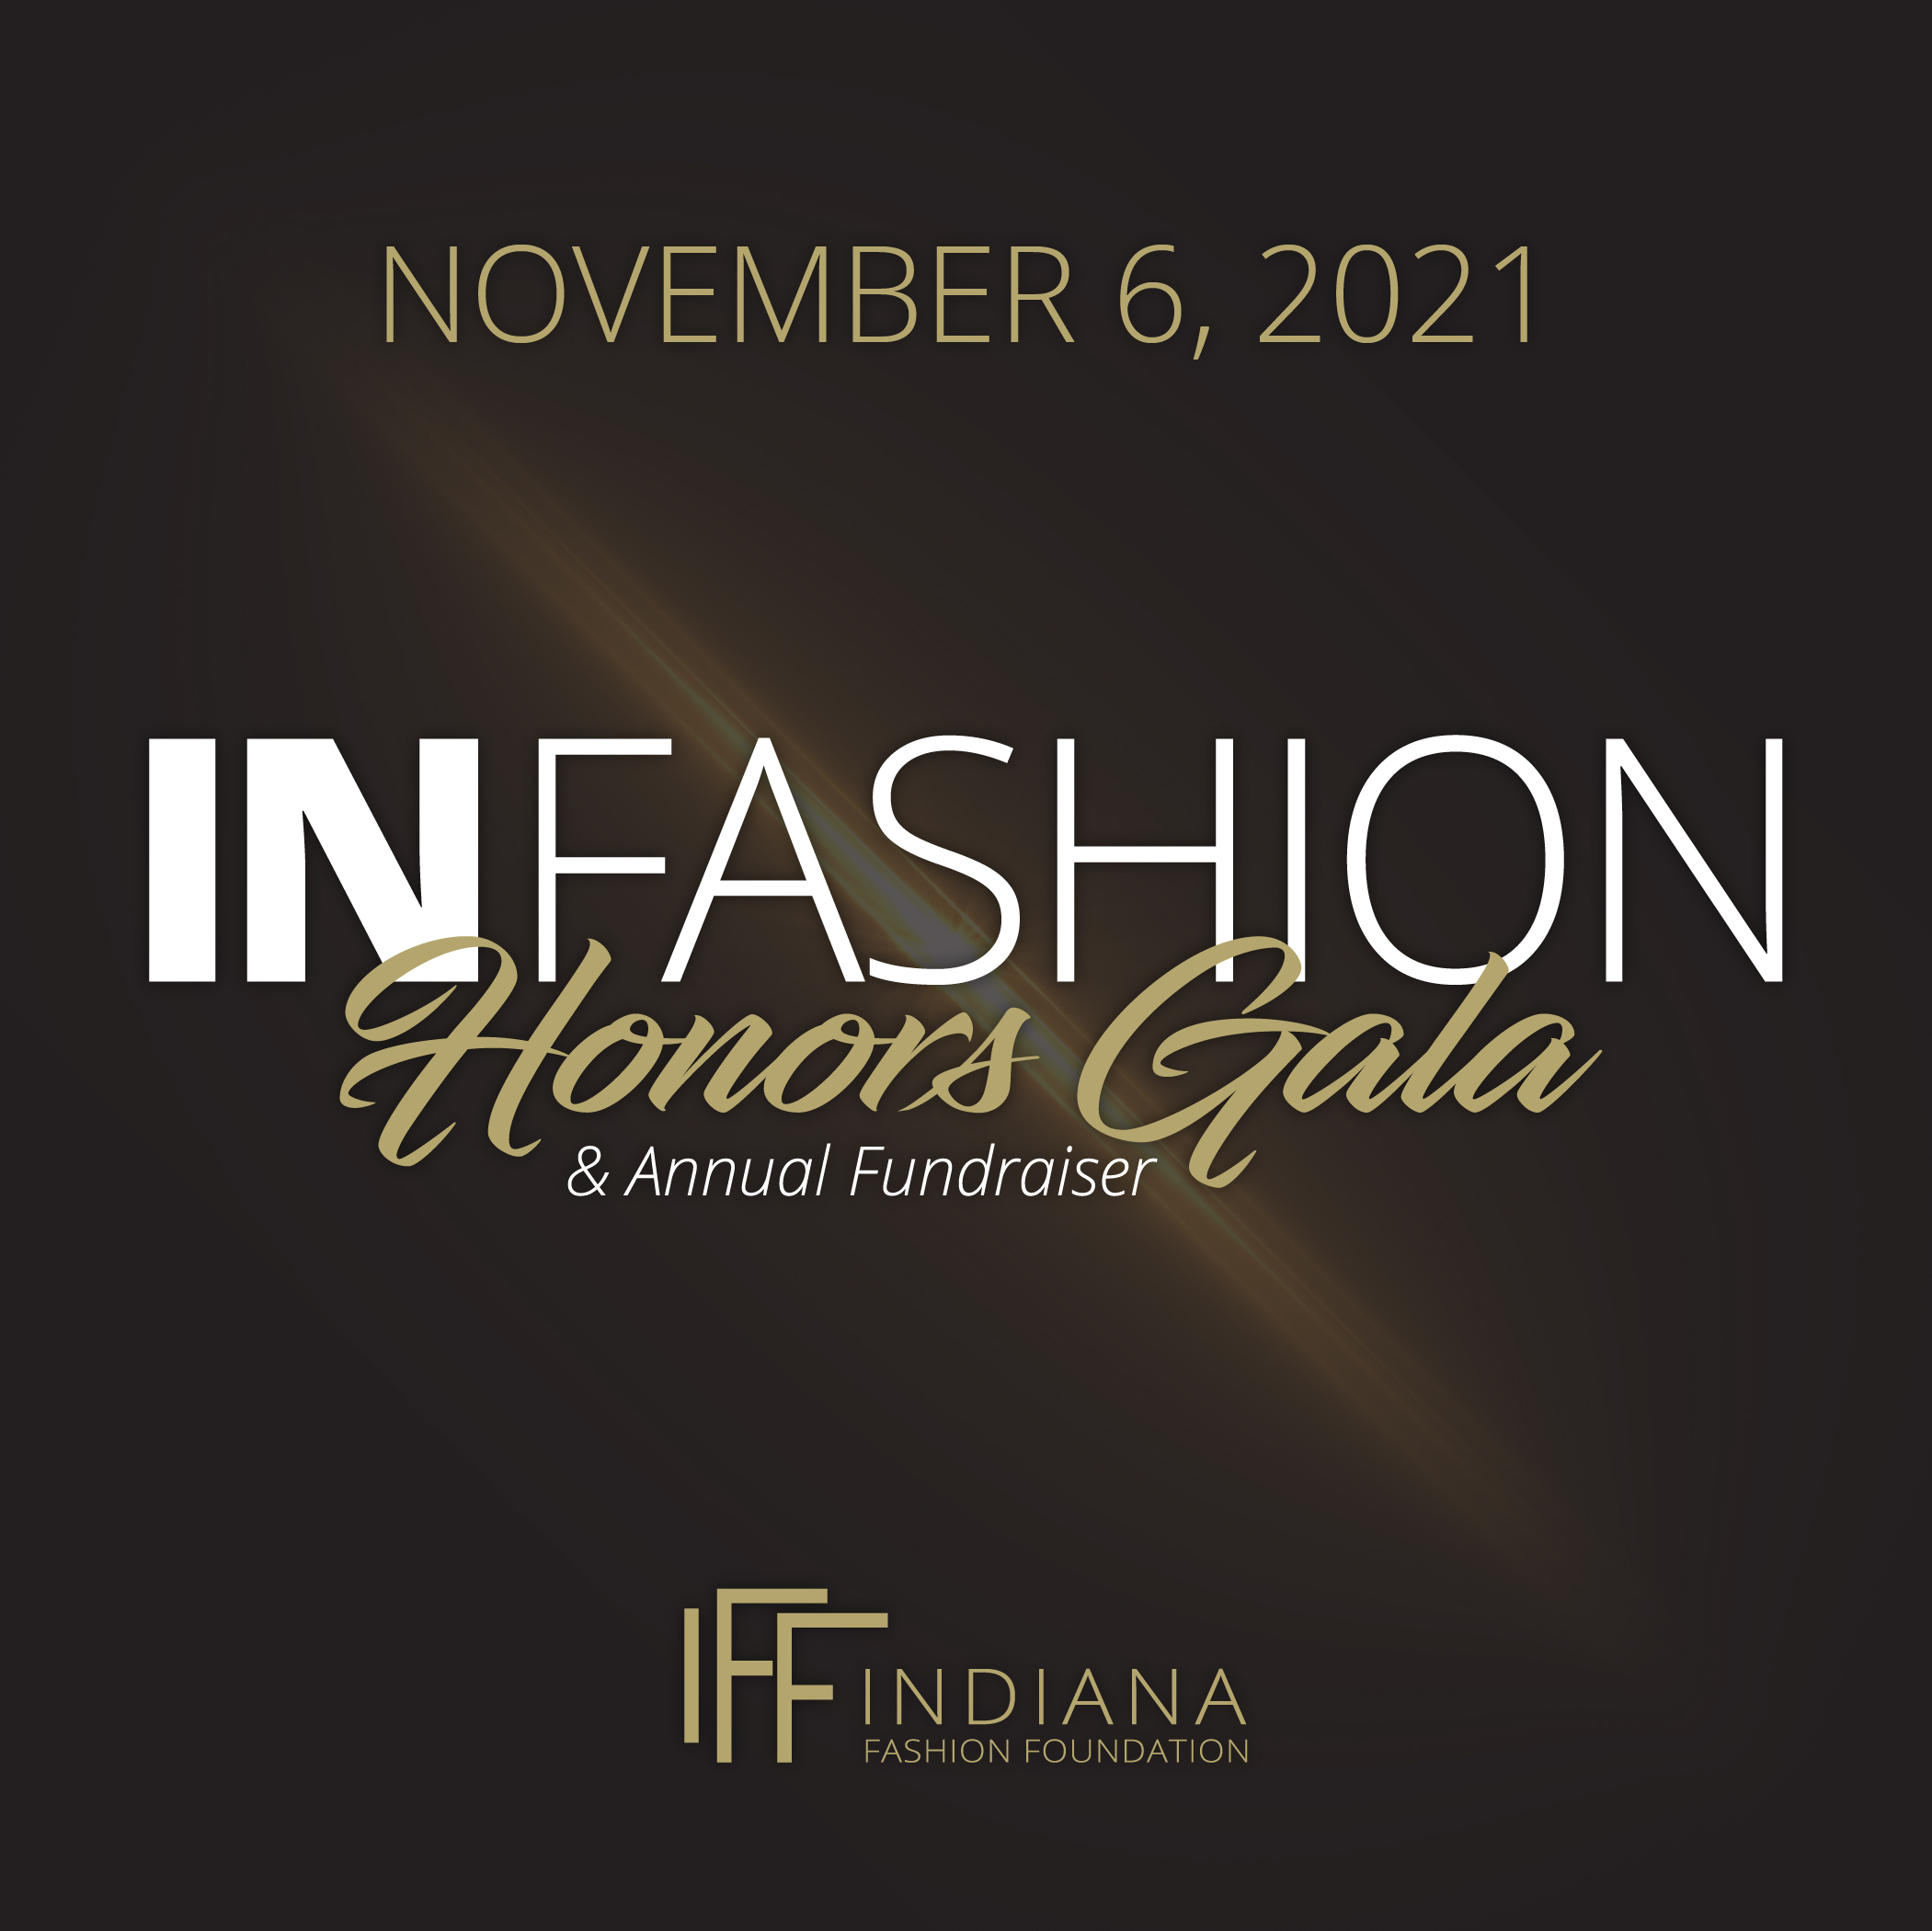 IN Fashion Honors Gala & Annual Fundraiser